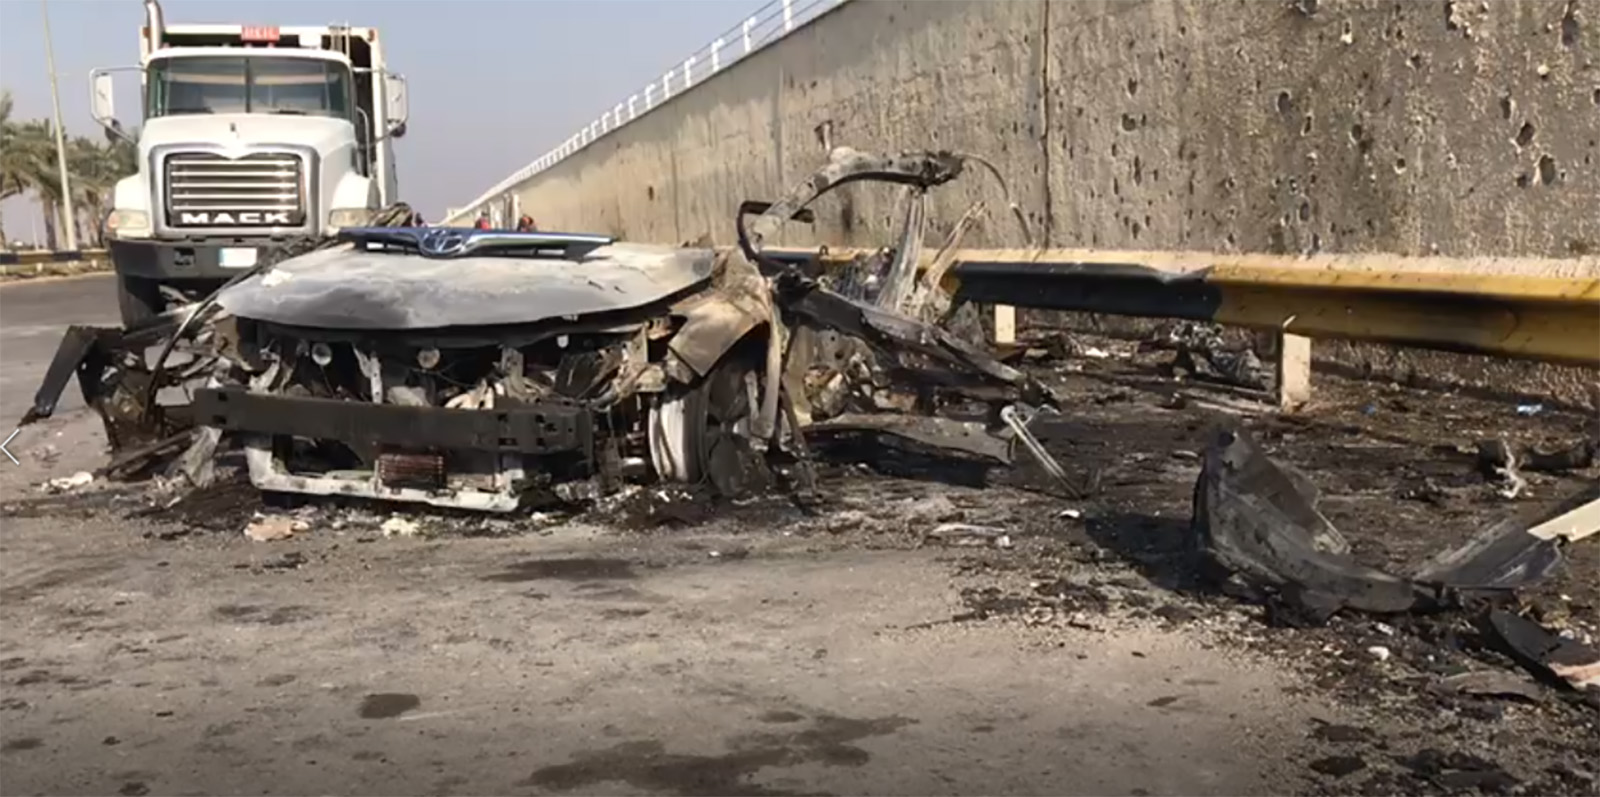 The aftermath of the US drone strike at Baghdad International Airport. Credit: Obtained by CNN